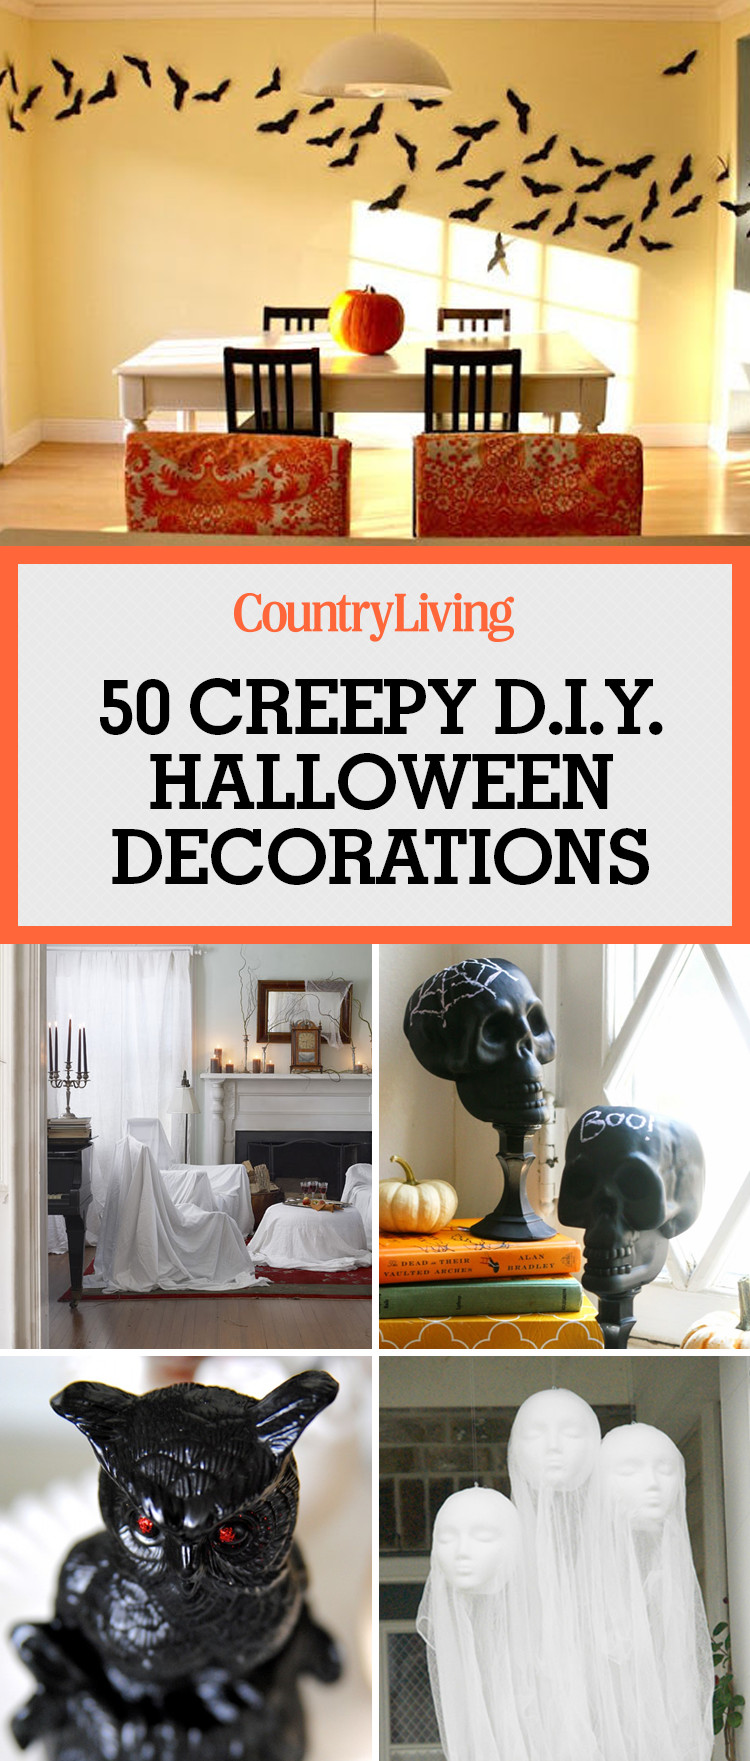 40 easy diy halloween decorations homemade do it. Black Bedroom Furniture Sets. Home Design Ideas